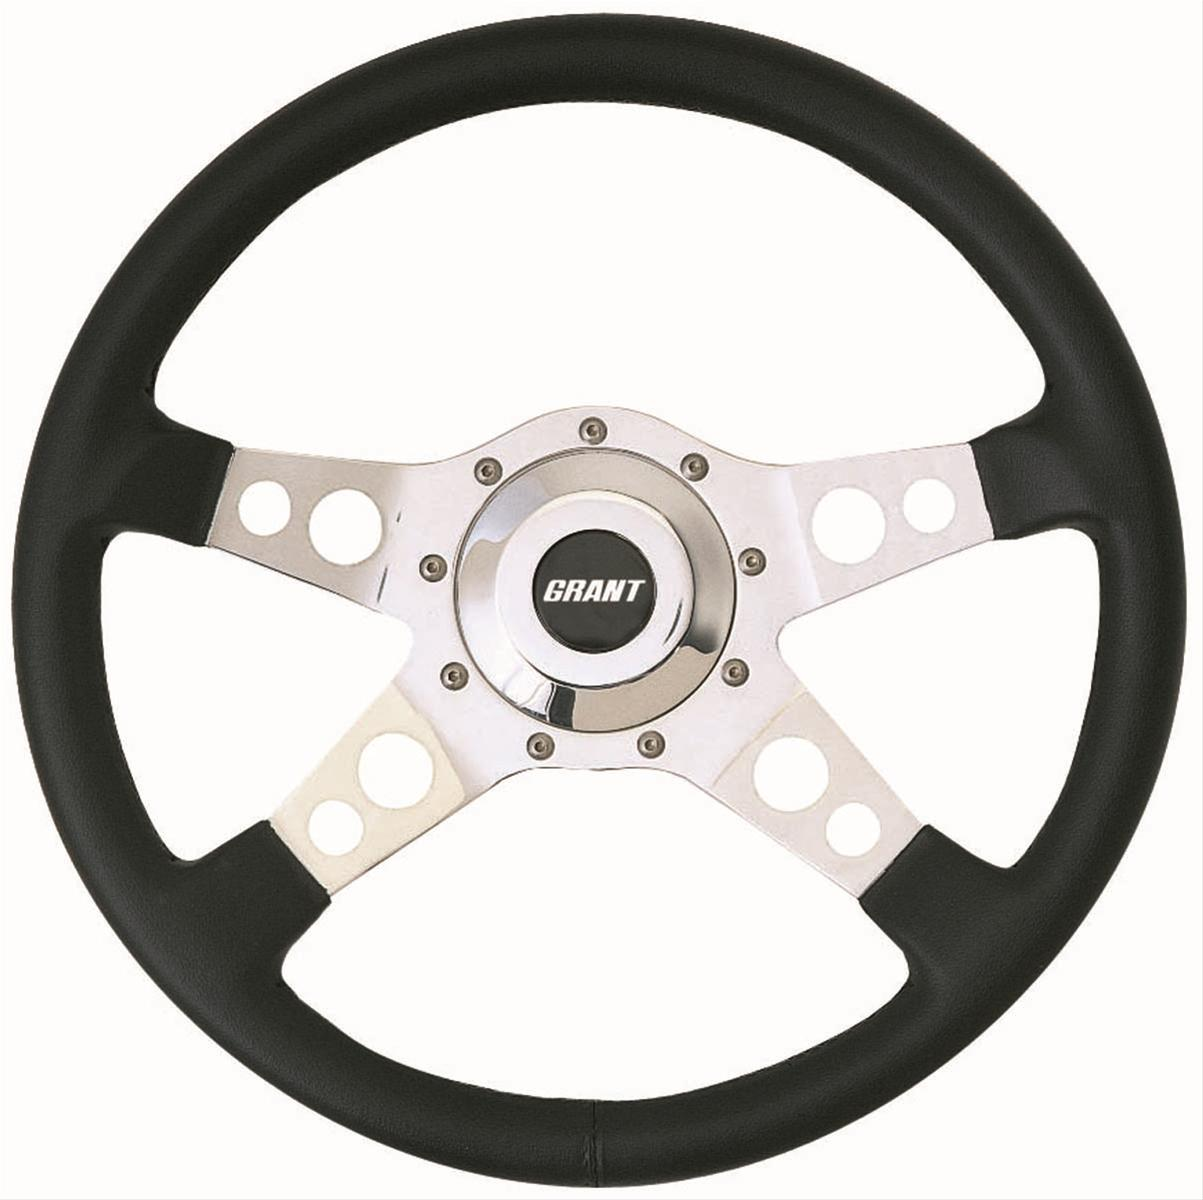 Grant Le Mans Steering Wheels 1074 Free Shipping On Orders Over 99 At Summit Racing